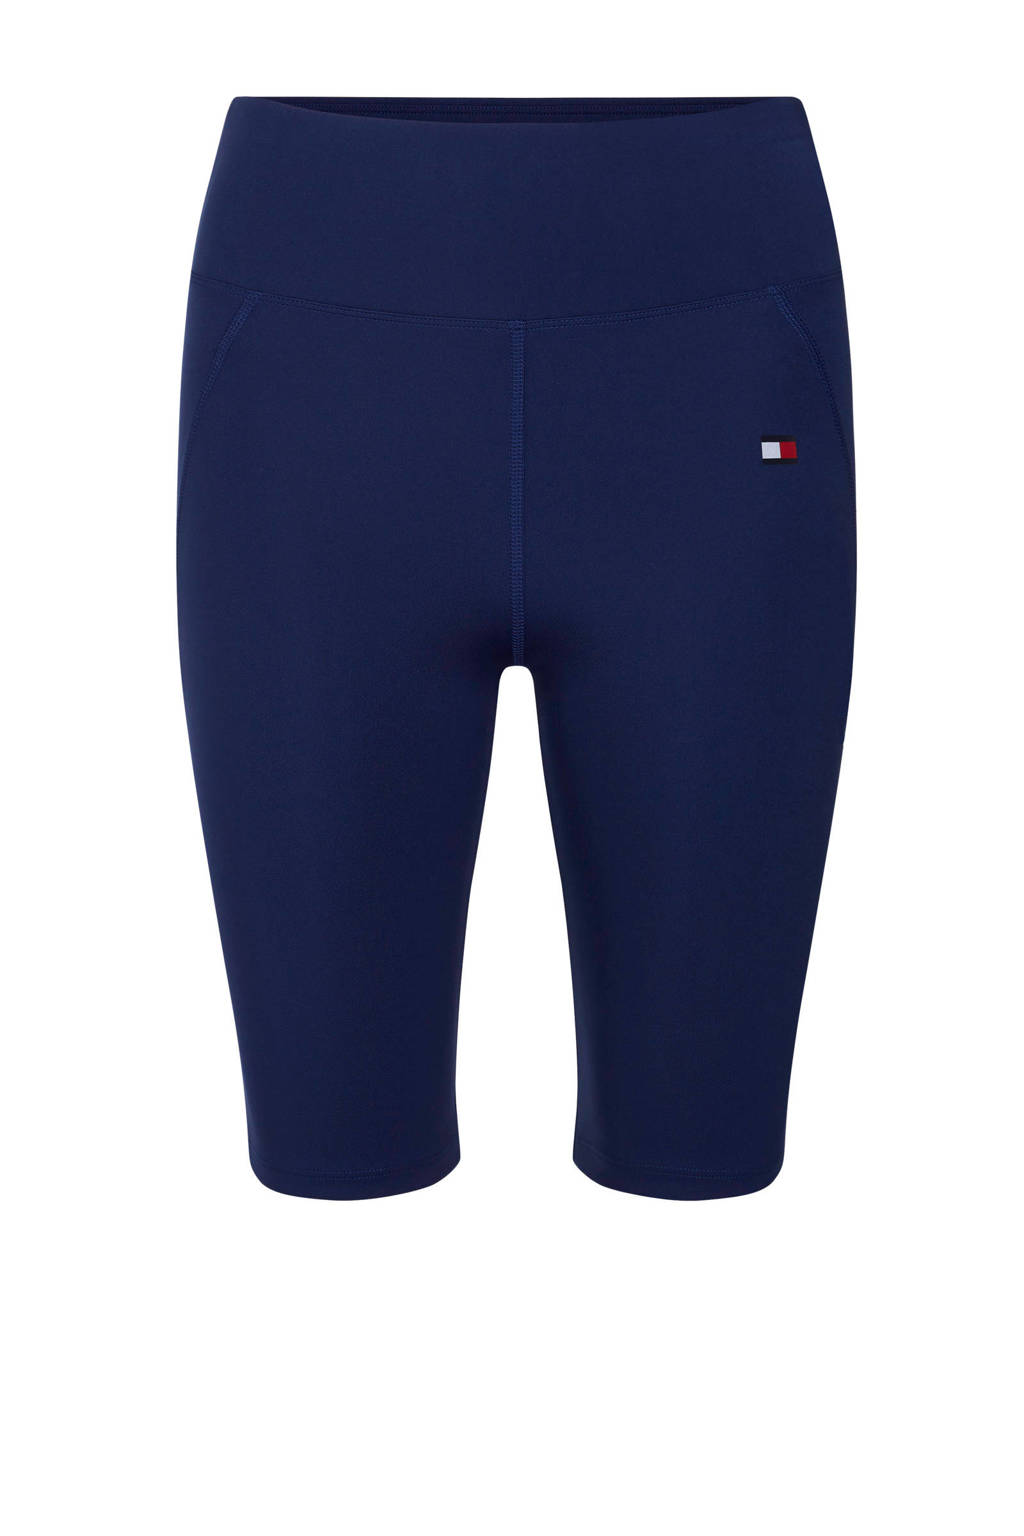 Tommy Hilfiger Sport cycling short donkerblauw, Donkerblauw